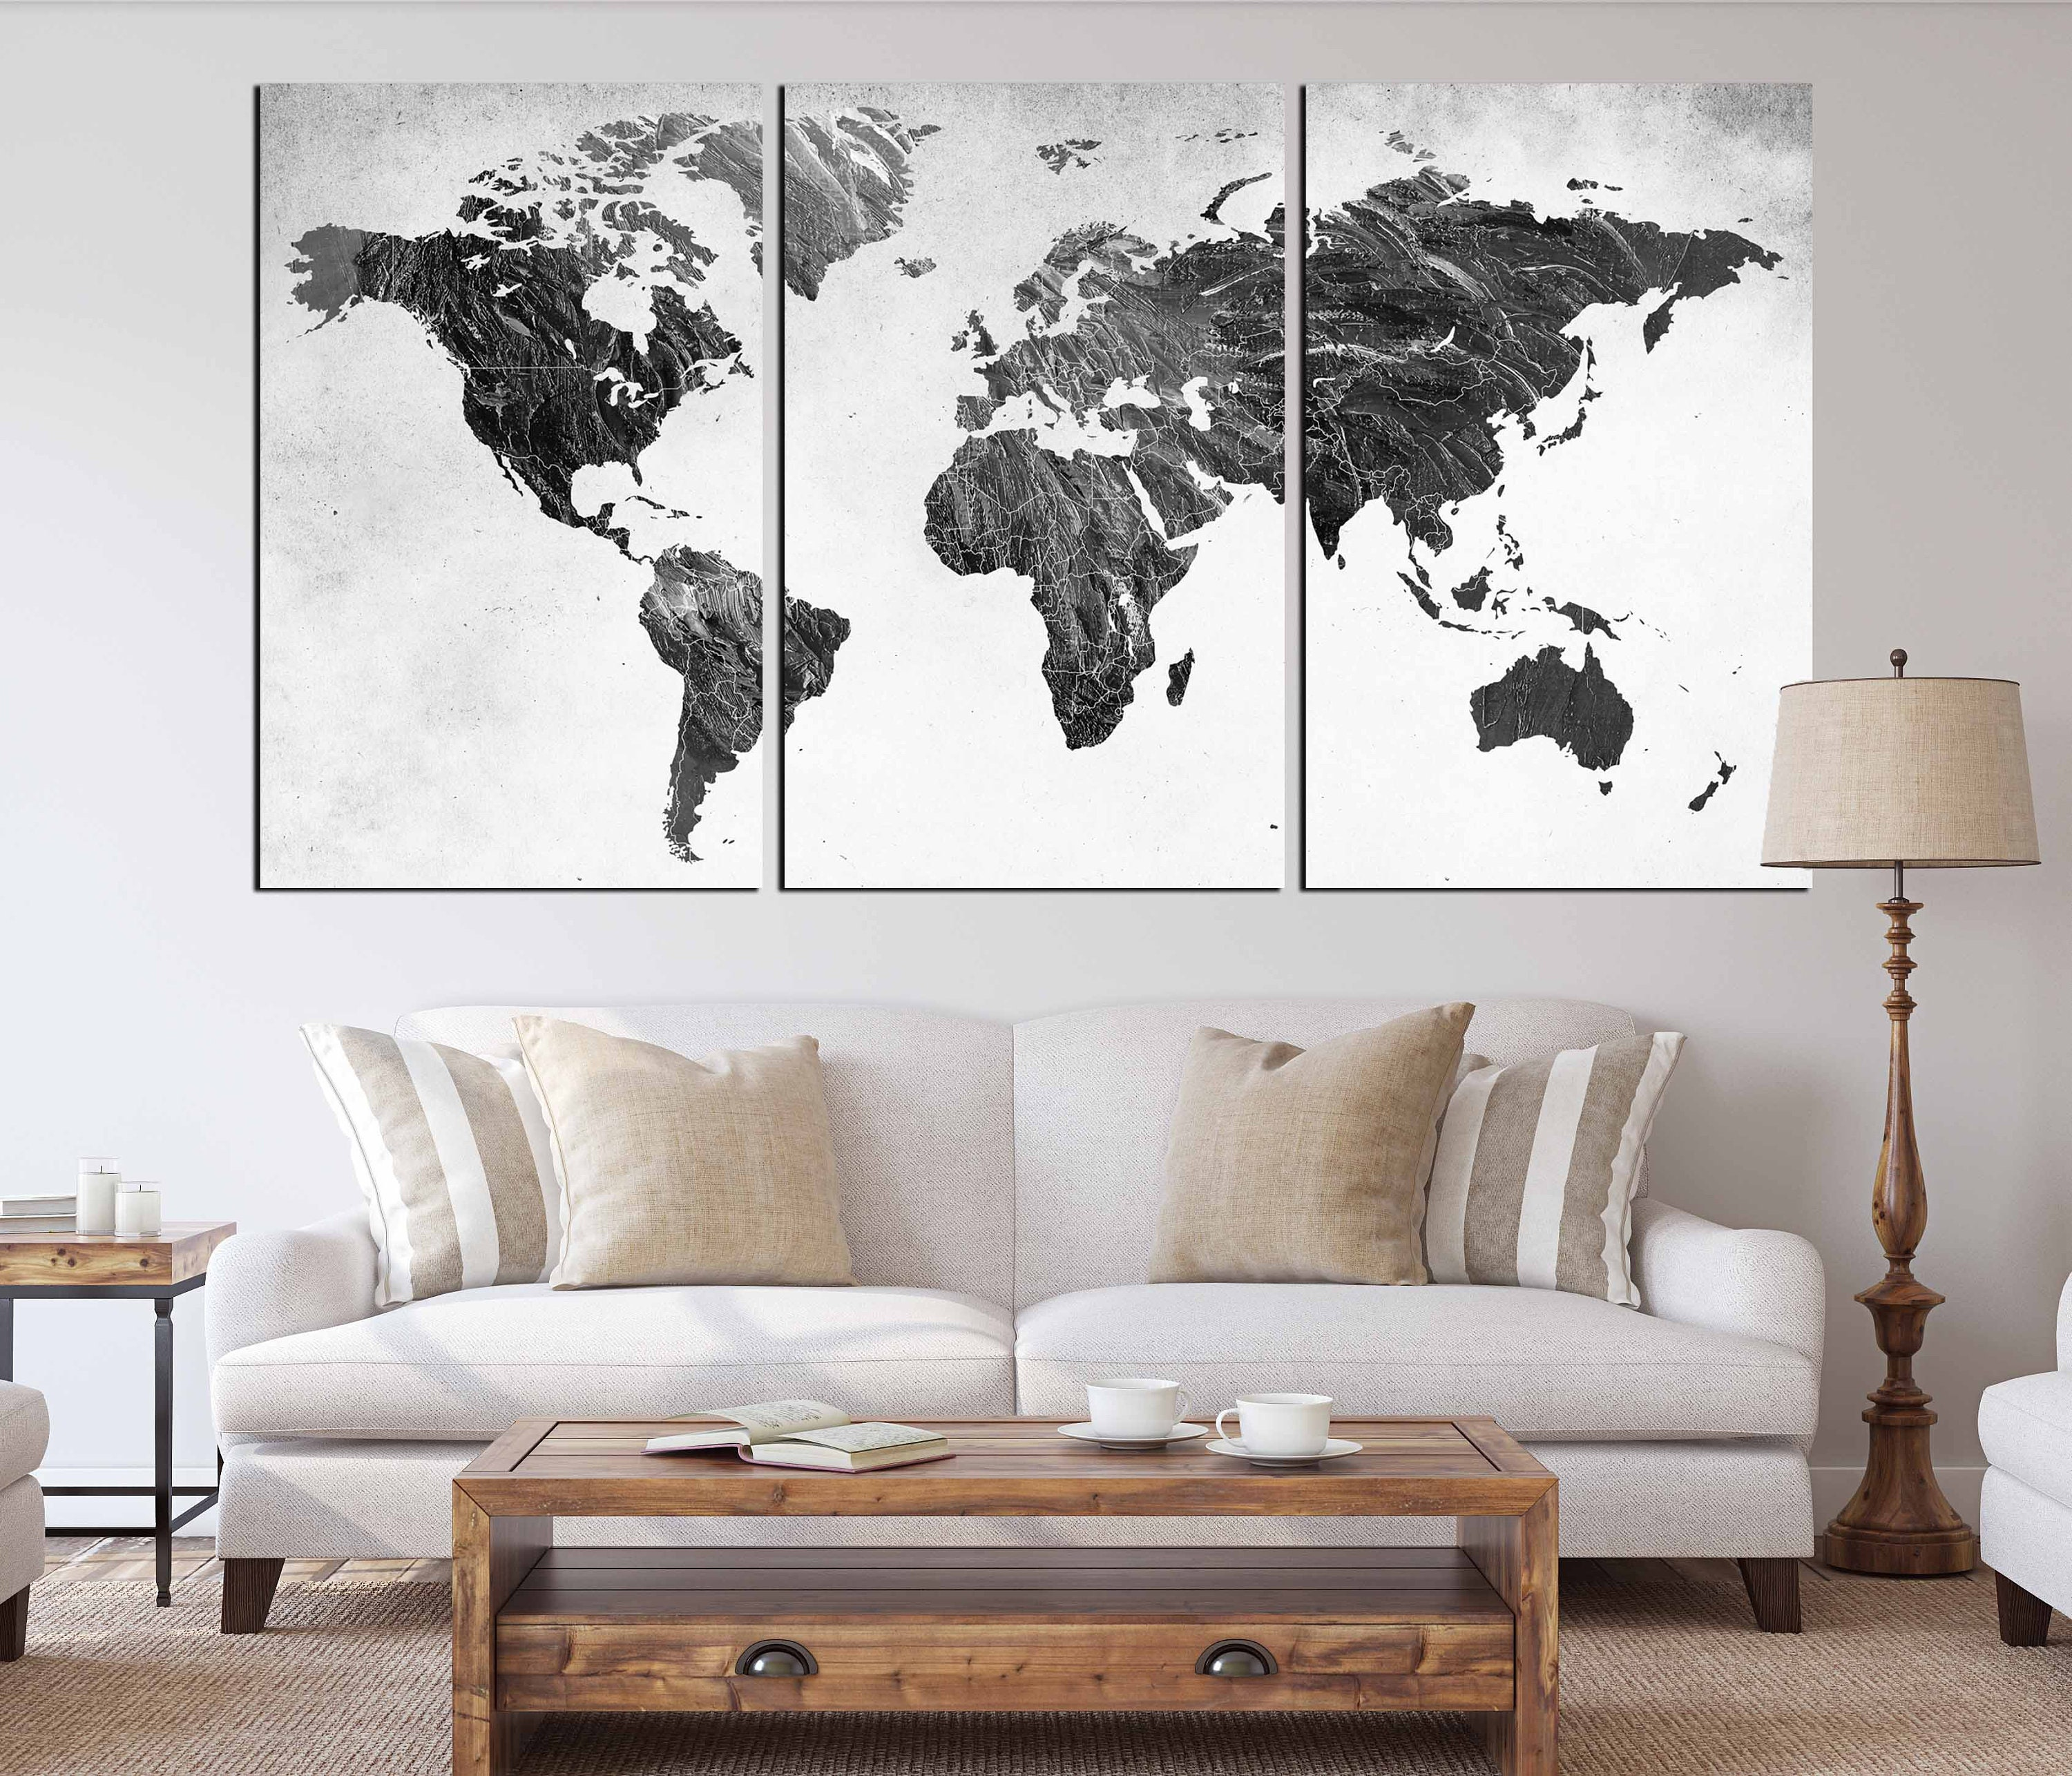 World mapblack and white mapworld map black whiteworld map art world mapblack and white mapworld map black whiteworld map artworld map canvasblack and white map abstract world mapblack white wall gumiabroncs Gallery